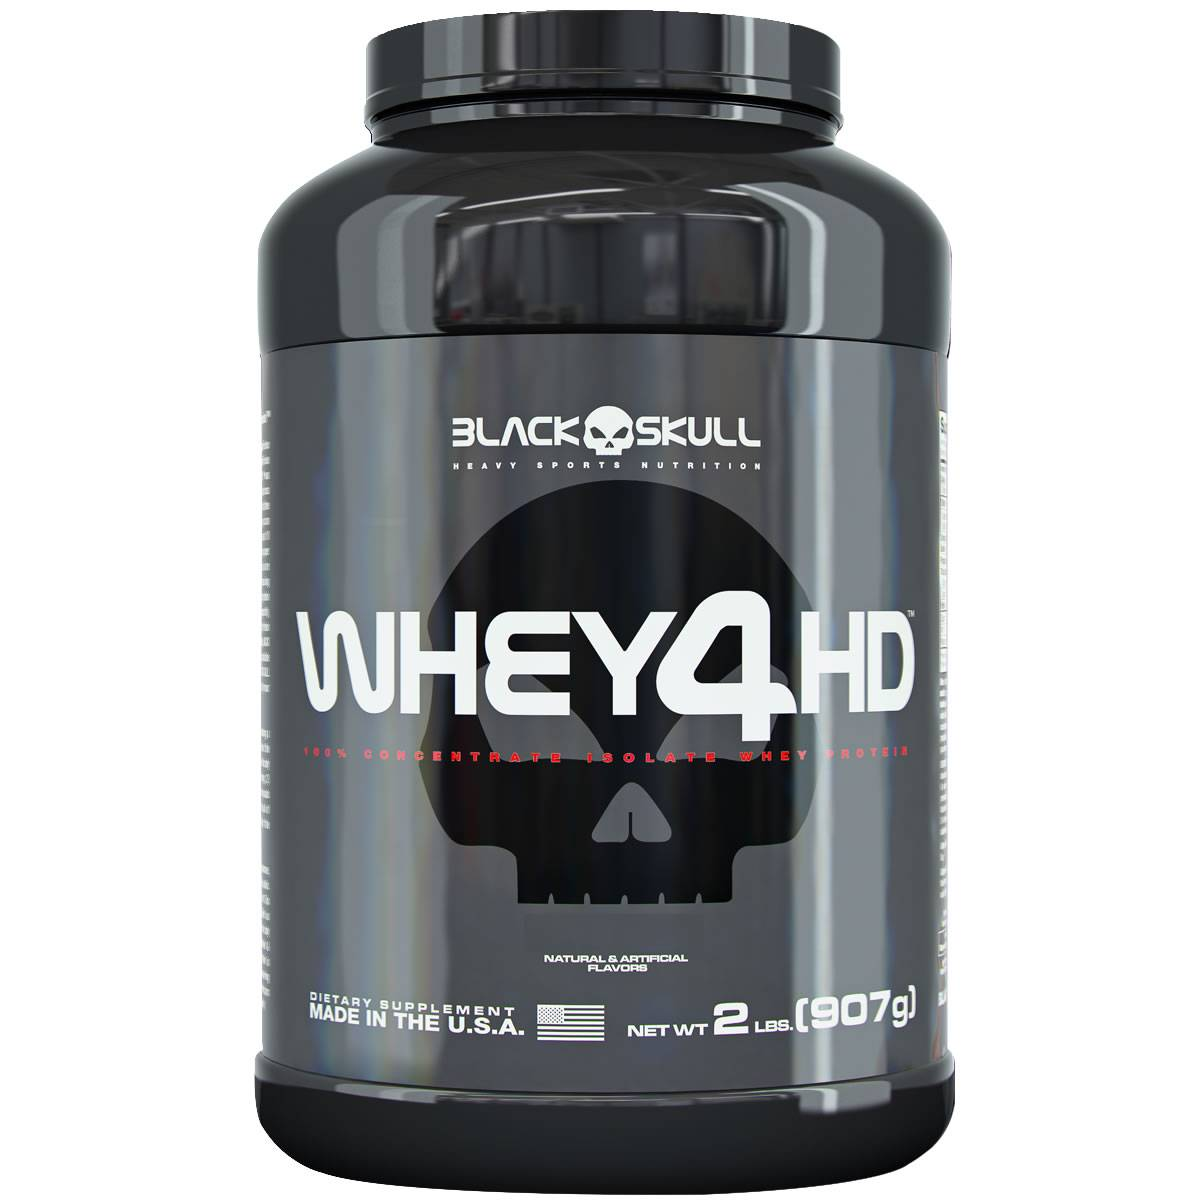 f0c486e8e Whey 4HD 900 g - Black Skull - Body Shopping Suplementos Alimentares